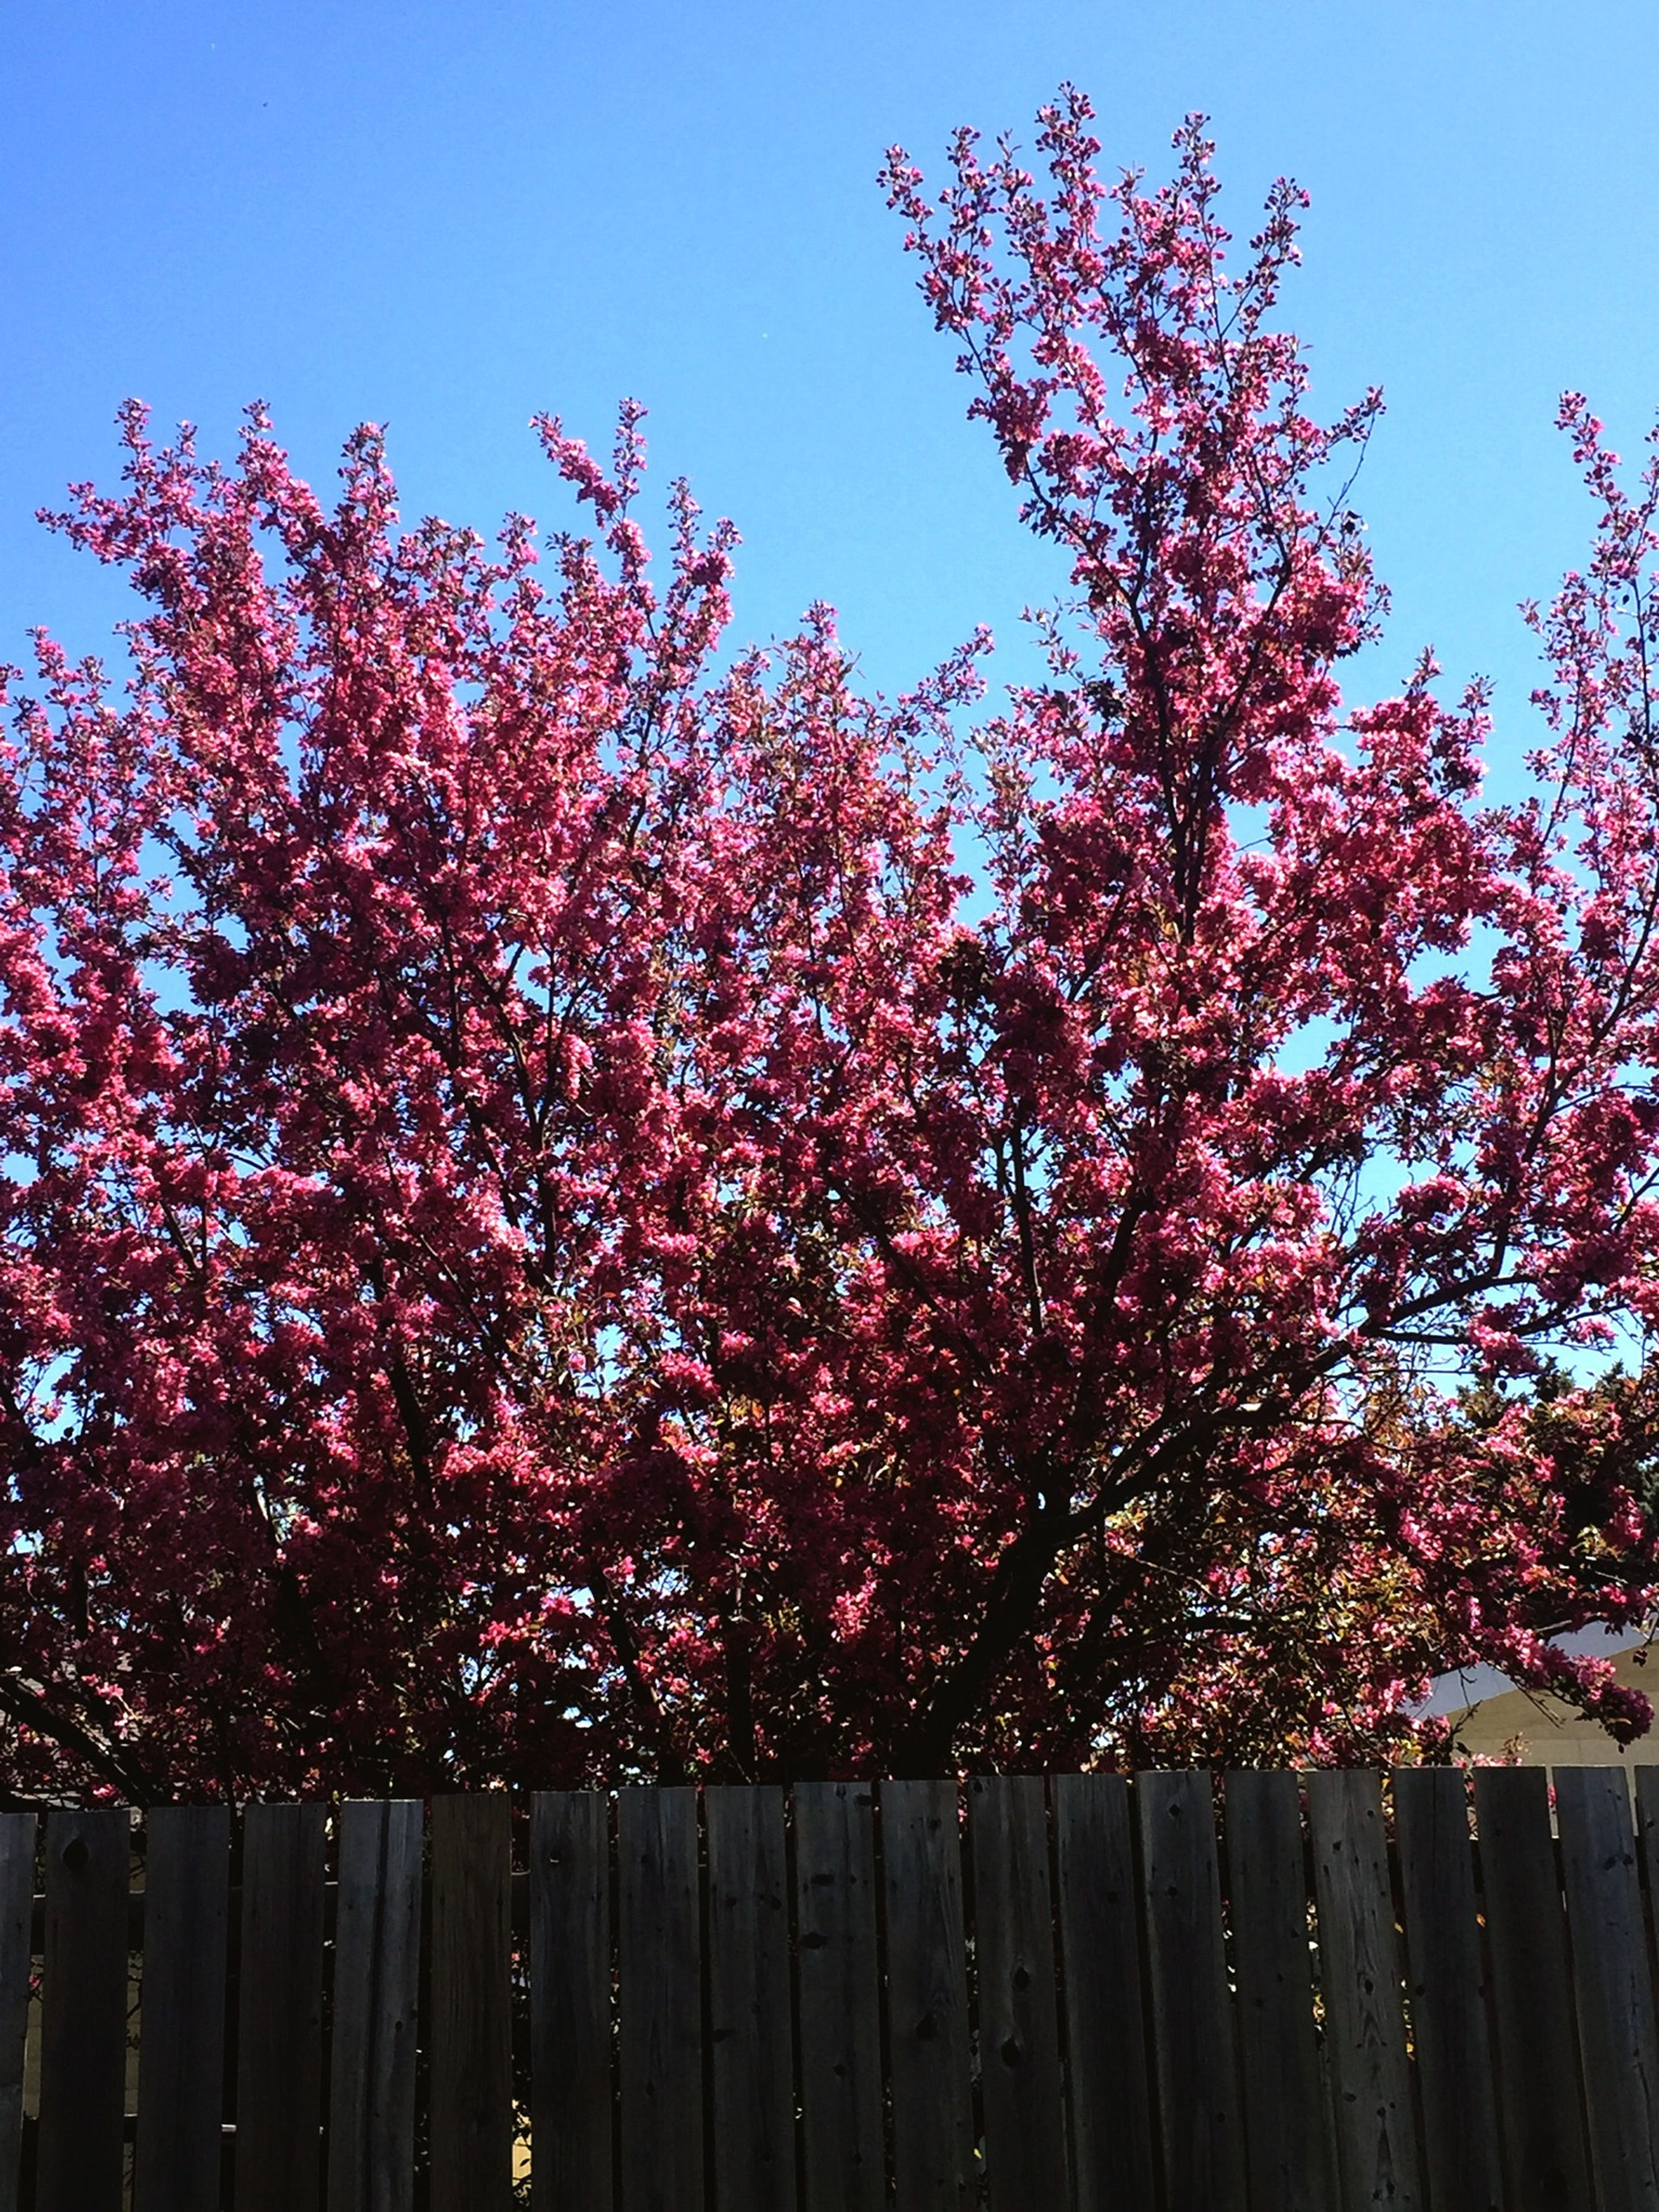 flower, tree, growth, clear sky, freshness, low angle view, beauty in nature, branch, pink color, nature, fragility, red, sky, blossom, blue, cherry tree, in bloom, blooming, springtime, outdoors